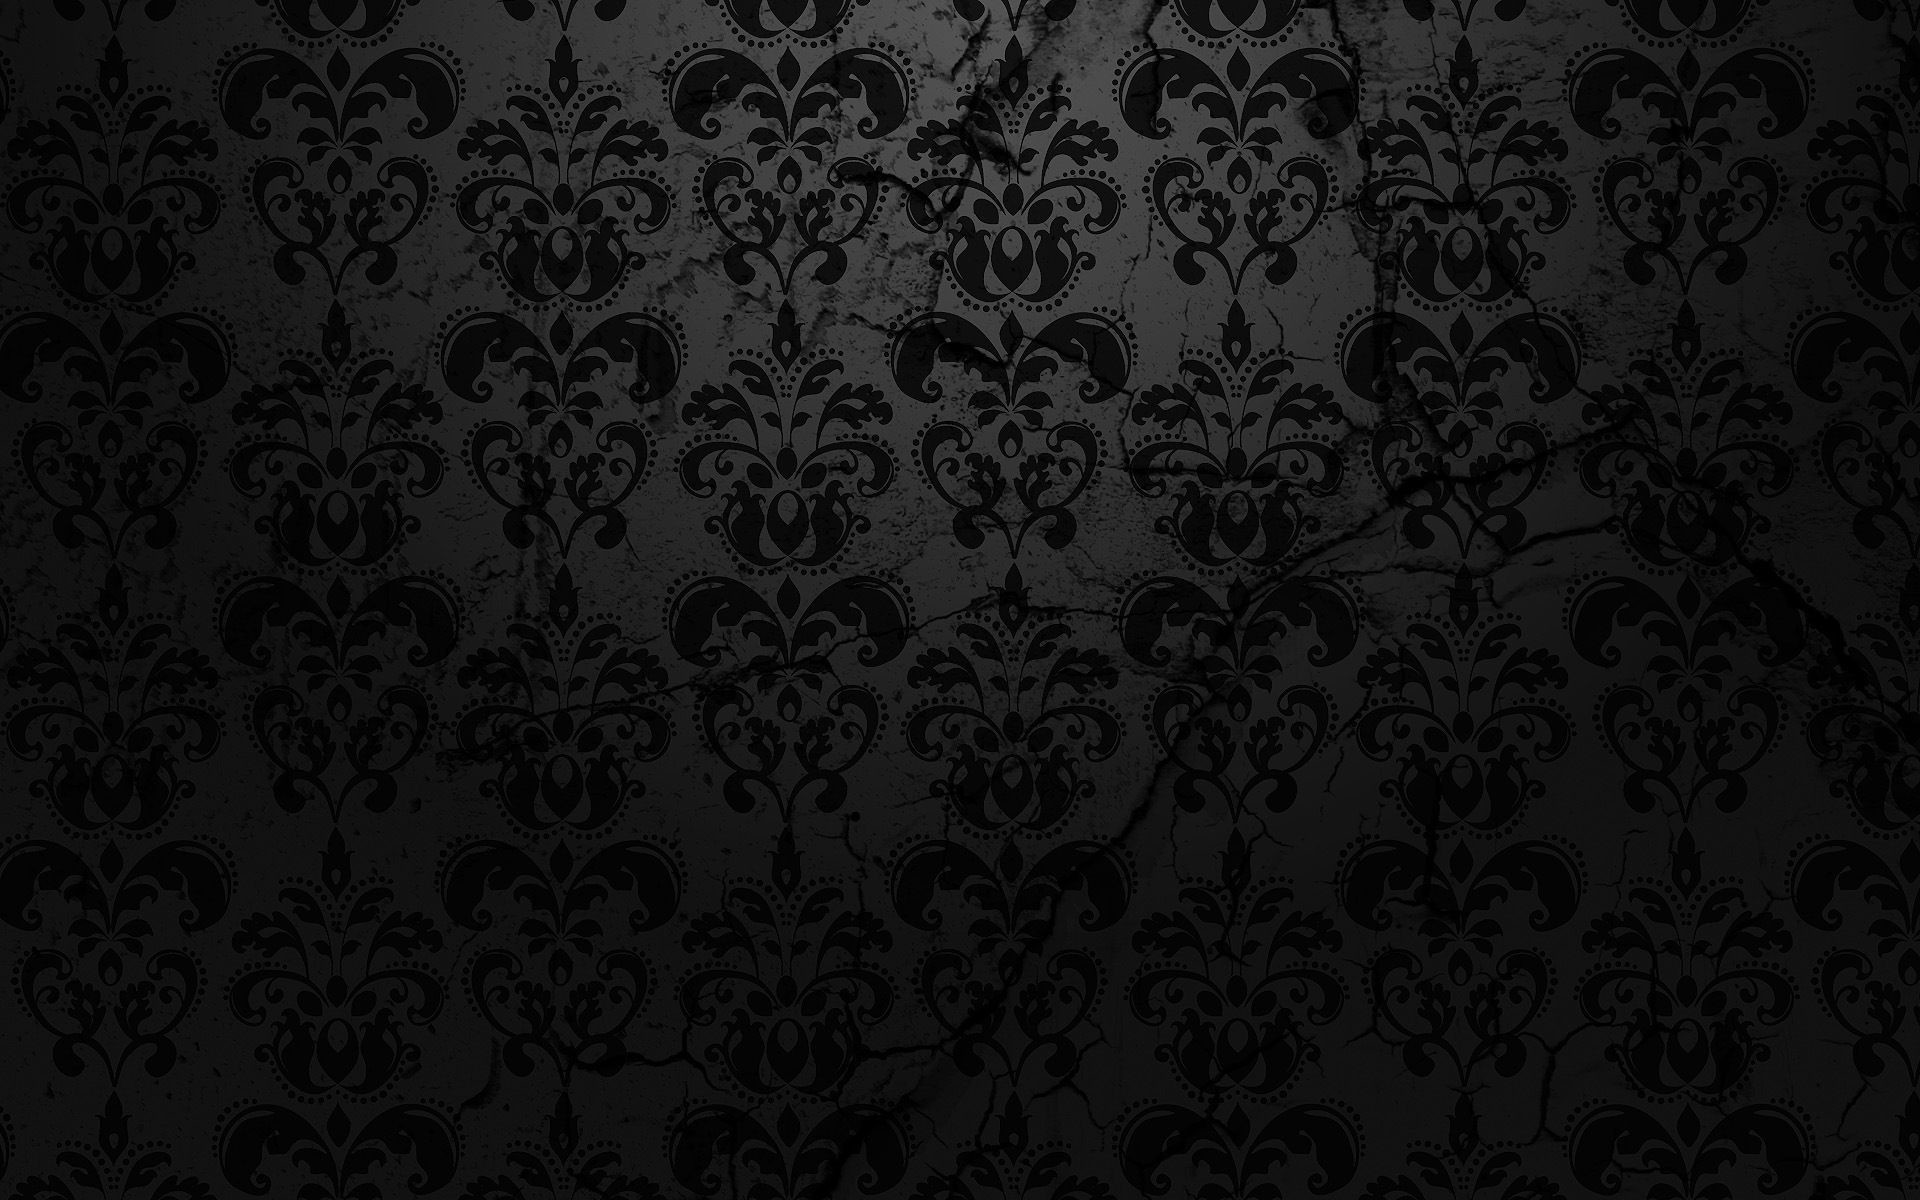 1920x1200 Cool Black On Damask Textured Wallpaper px